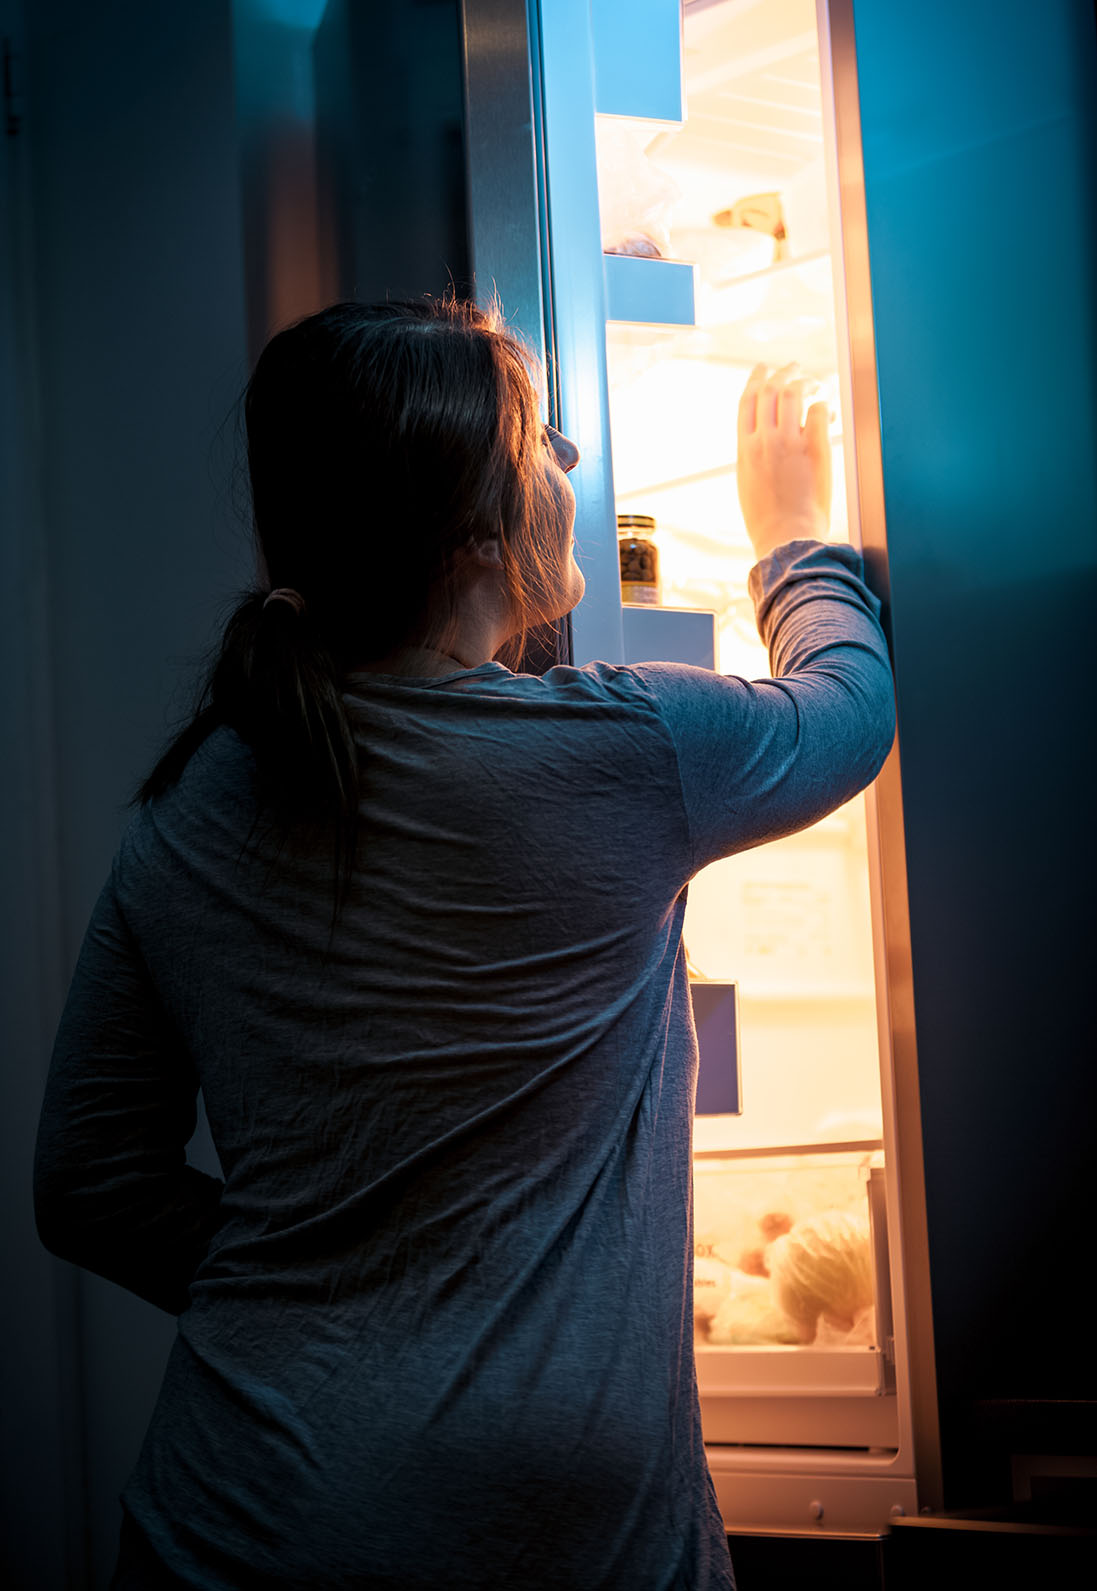 Portrait of young woman opening refrigerator at night